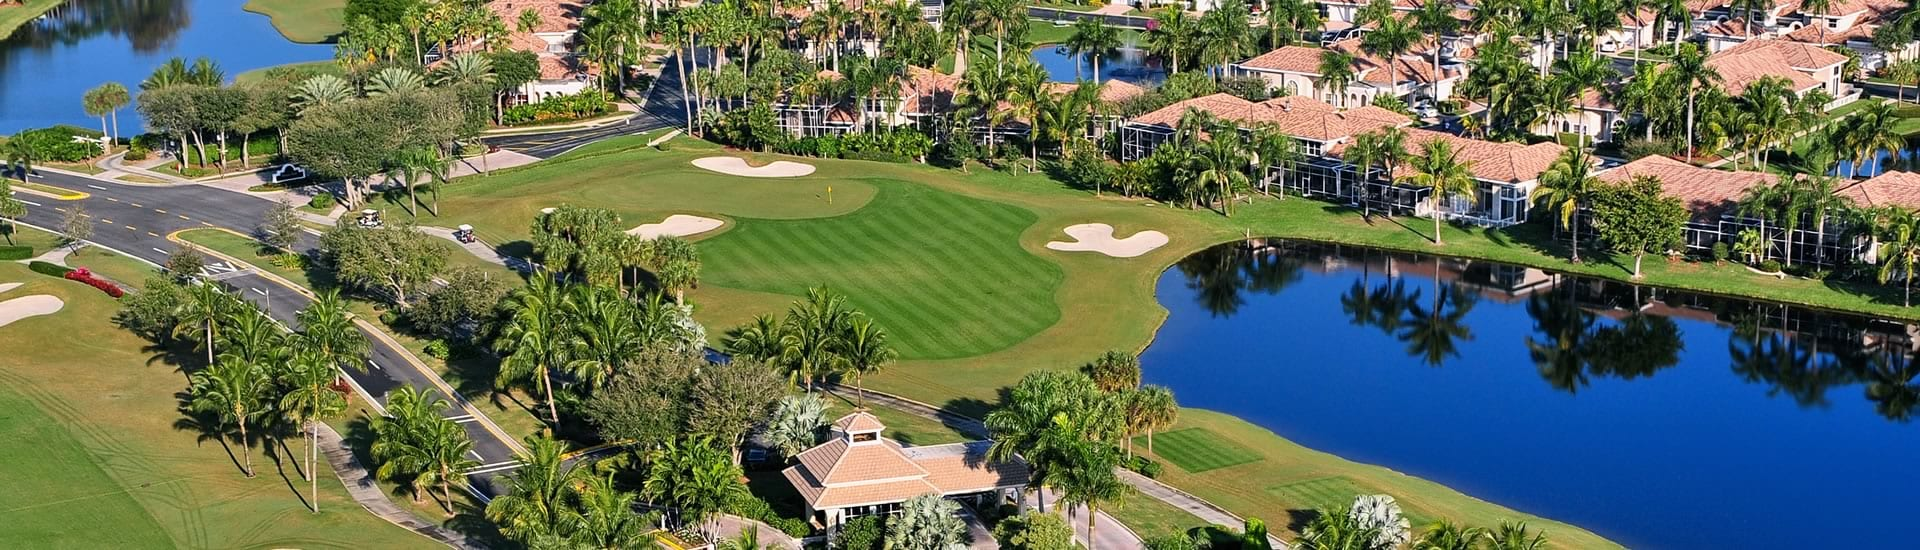 Golf Community Florida Home Watch Services